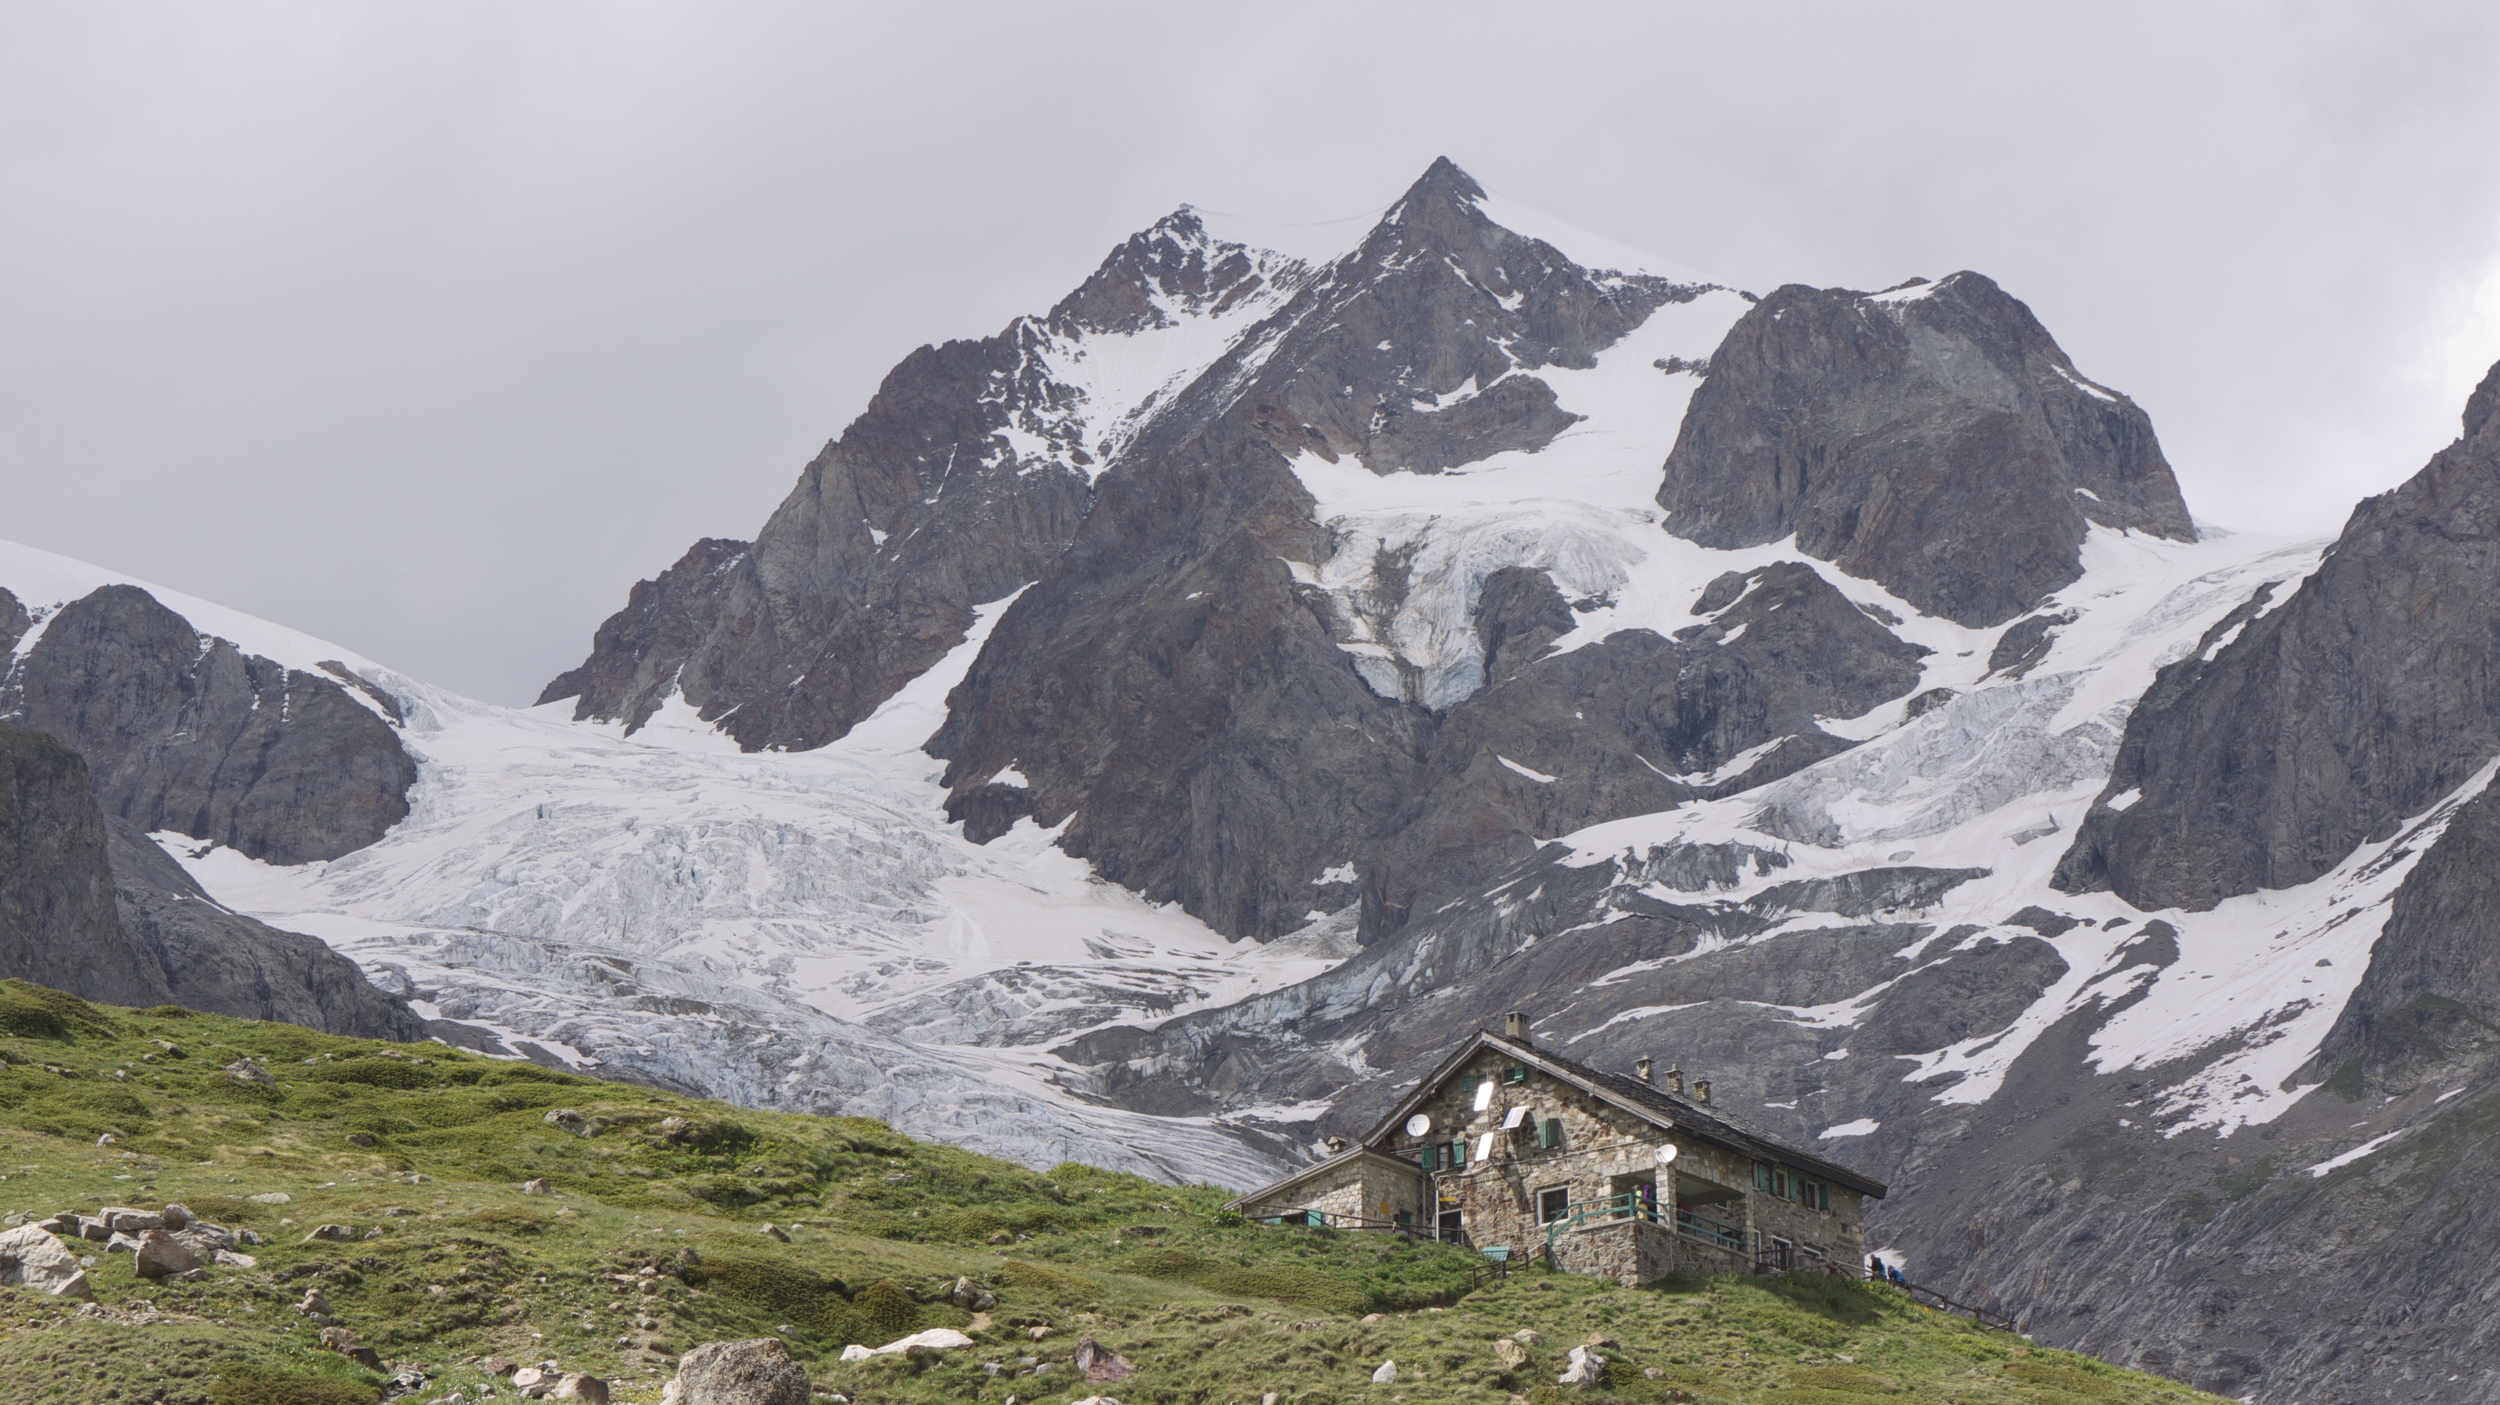 Each hut is unique and possessing of its own personality. The Rifugio Elisabetta welcomes us to Italy.